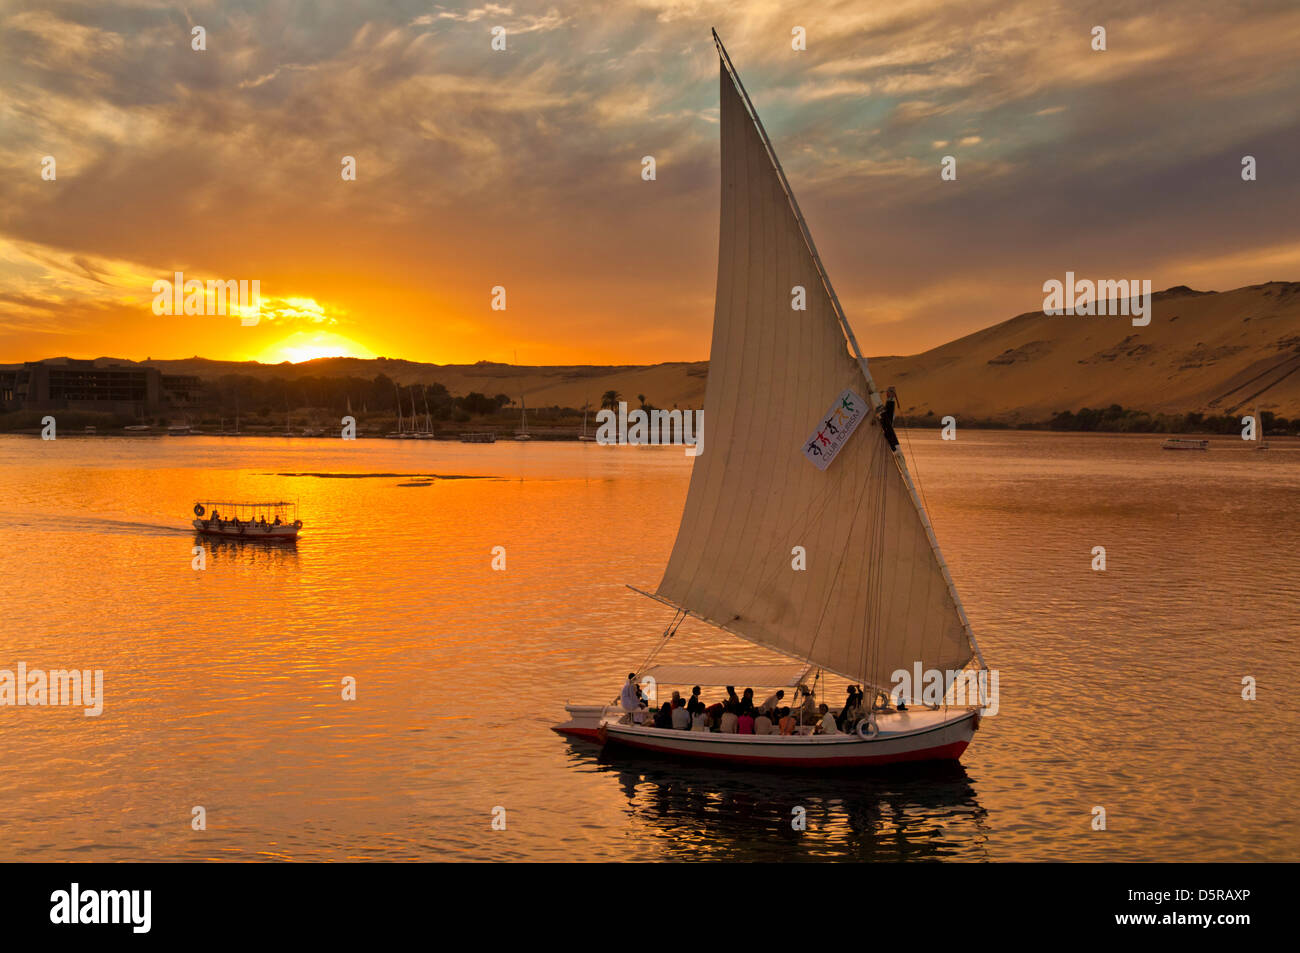 Traditional wooden sailing boats or Feluccas at sunset sailing on the river Nile at Aswan Egypt Middle East Stock Photo